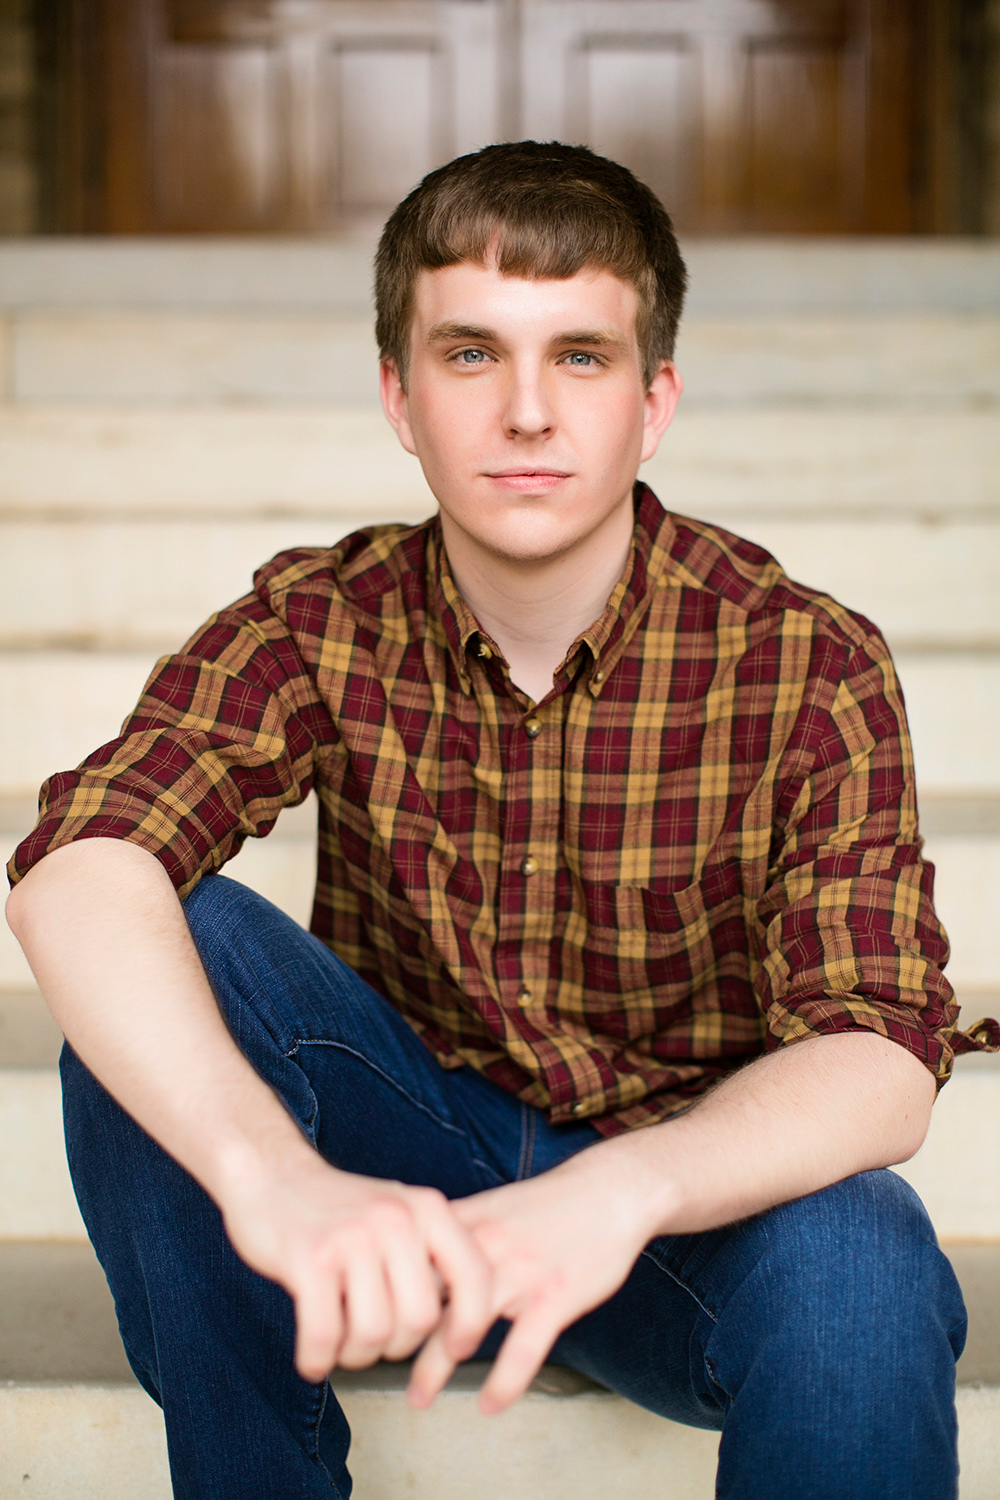 linda-mcmillan-photography-senior-zach-texas-tech-campus.jpg